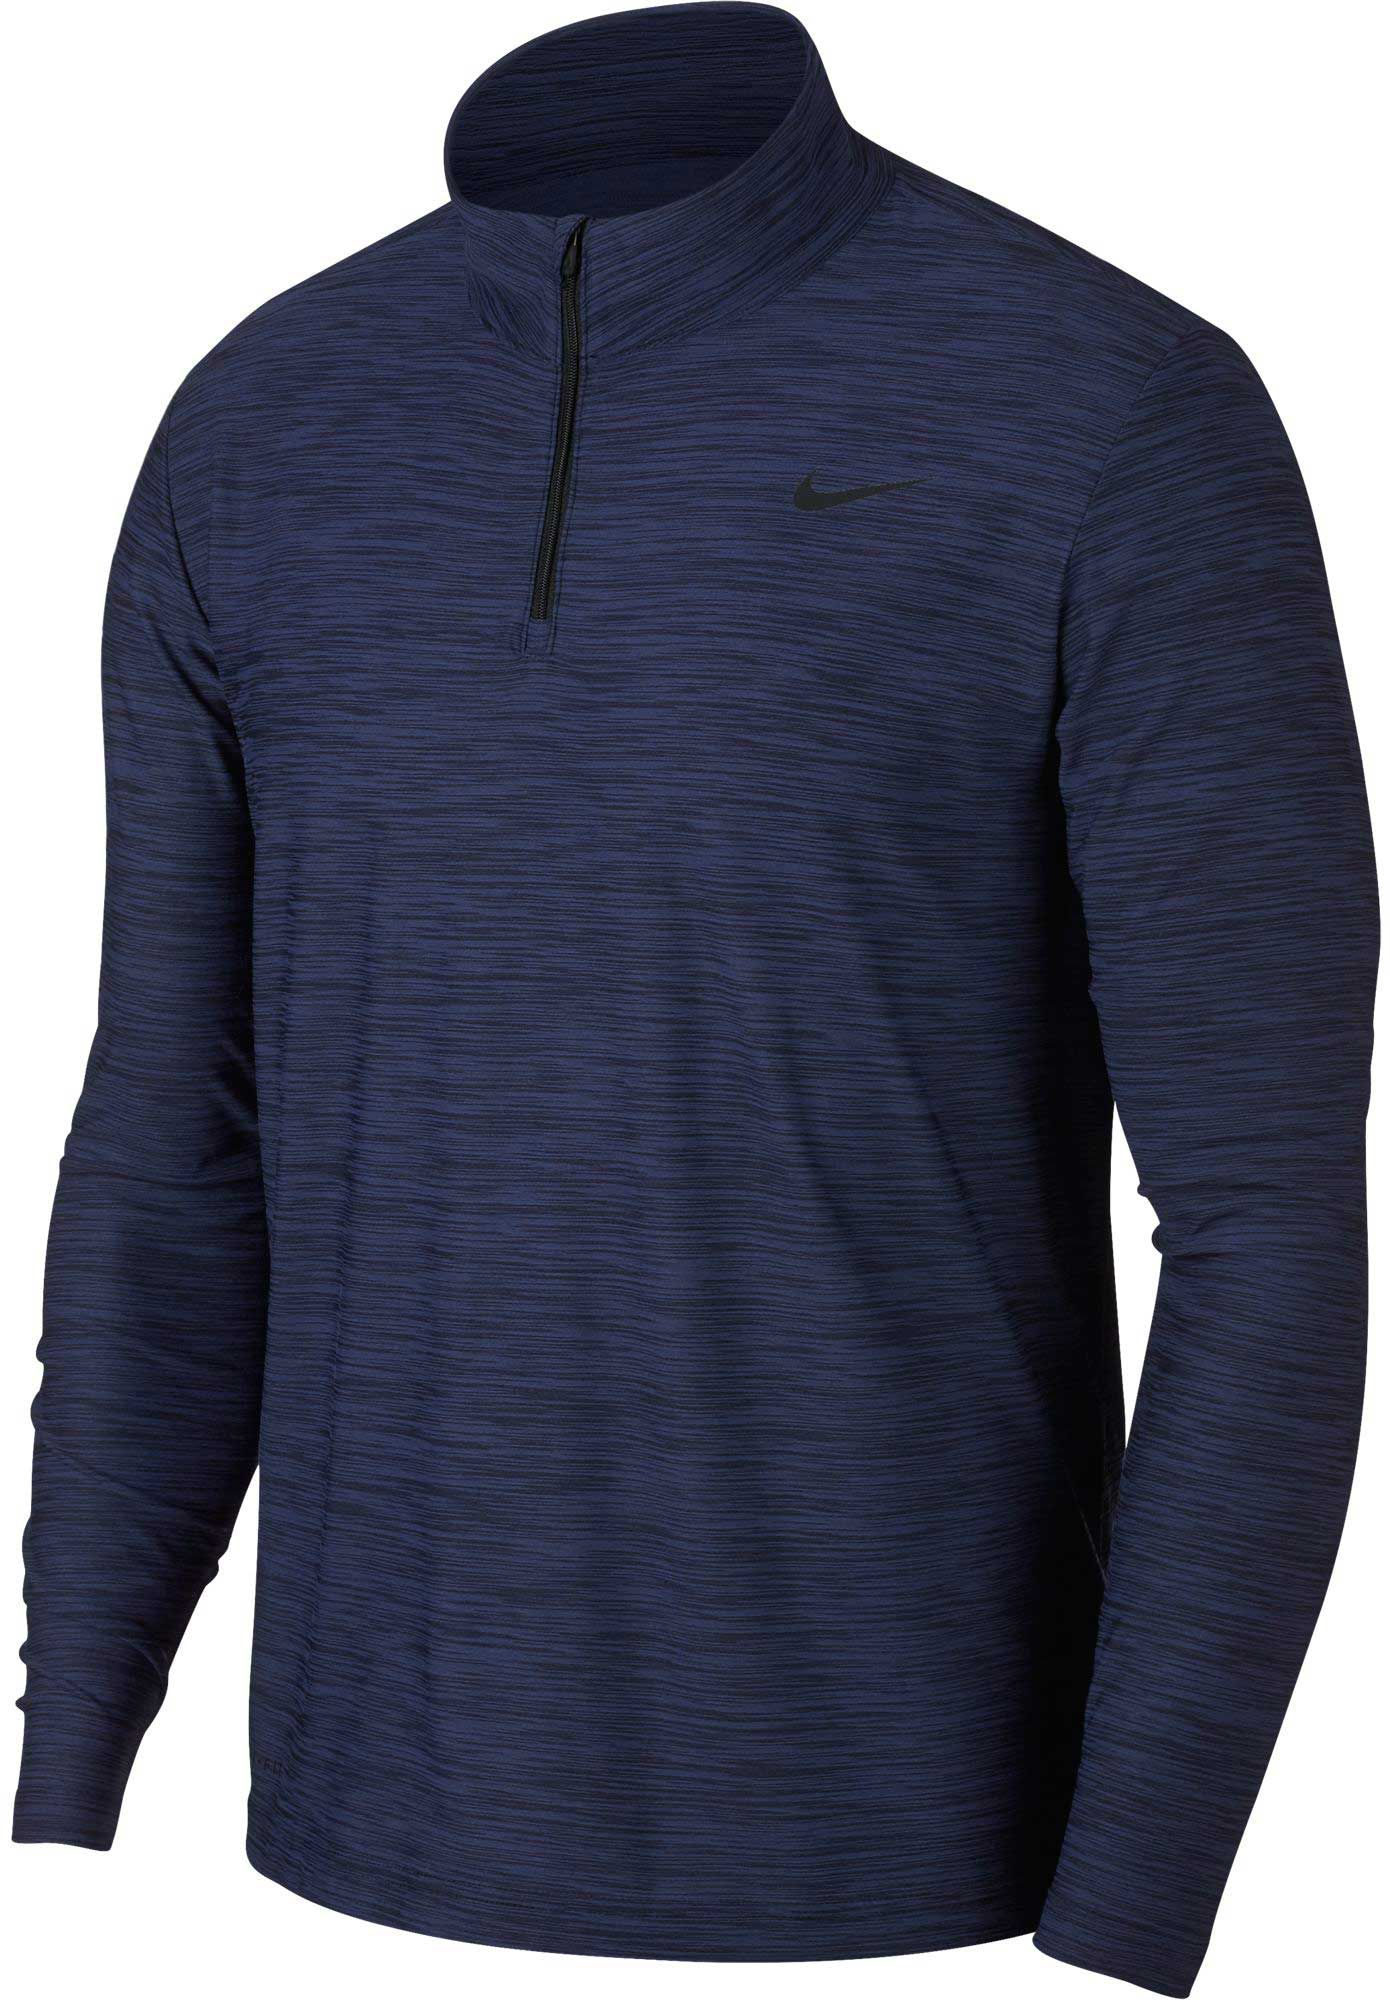 Men's Nike Long Sleeve Shirts | DICK'S Sporting Goods